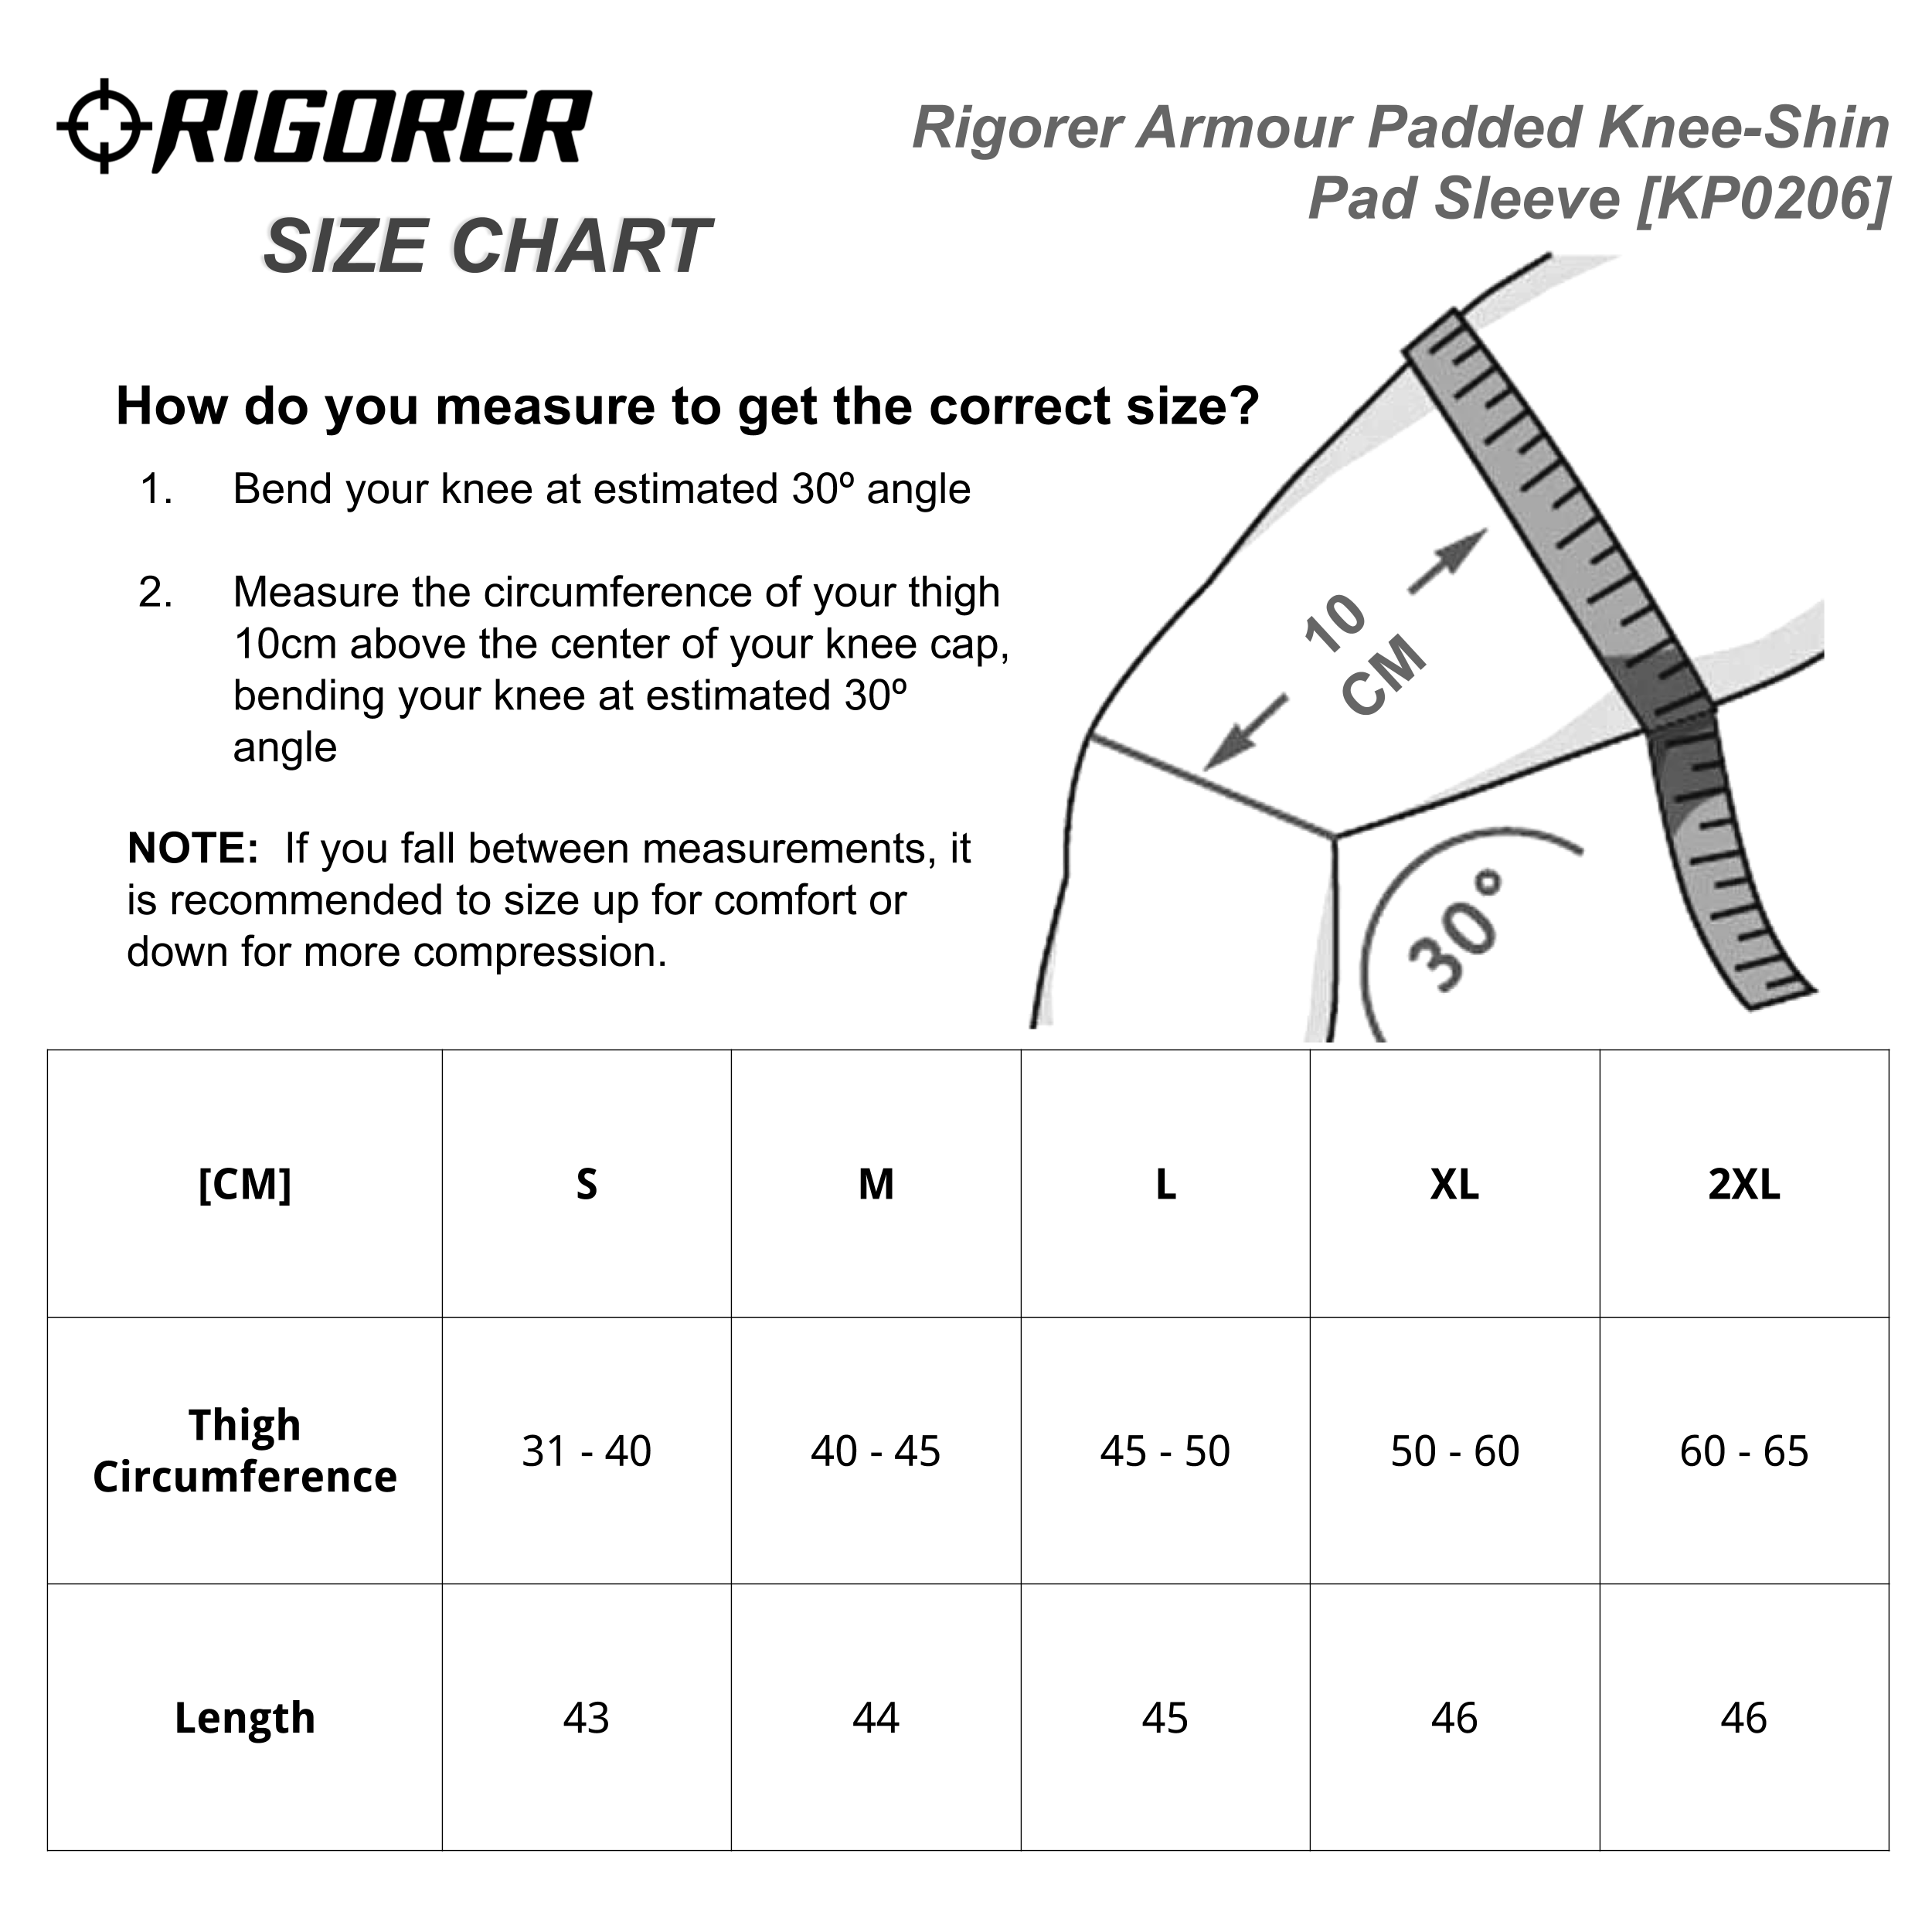 Rigorer Armour Padded Knee-Shin Pad Sleeve [KP0206] Sizing Chart